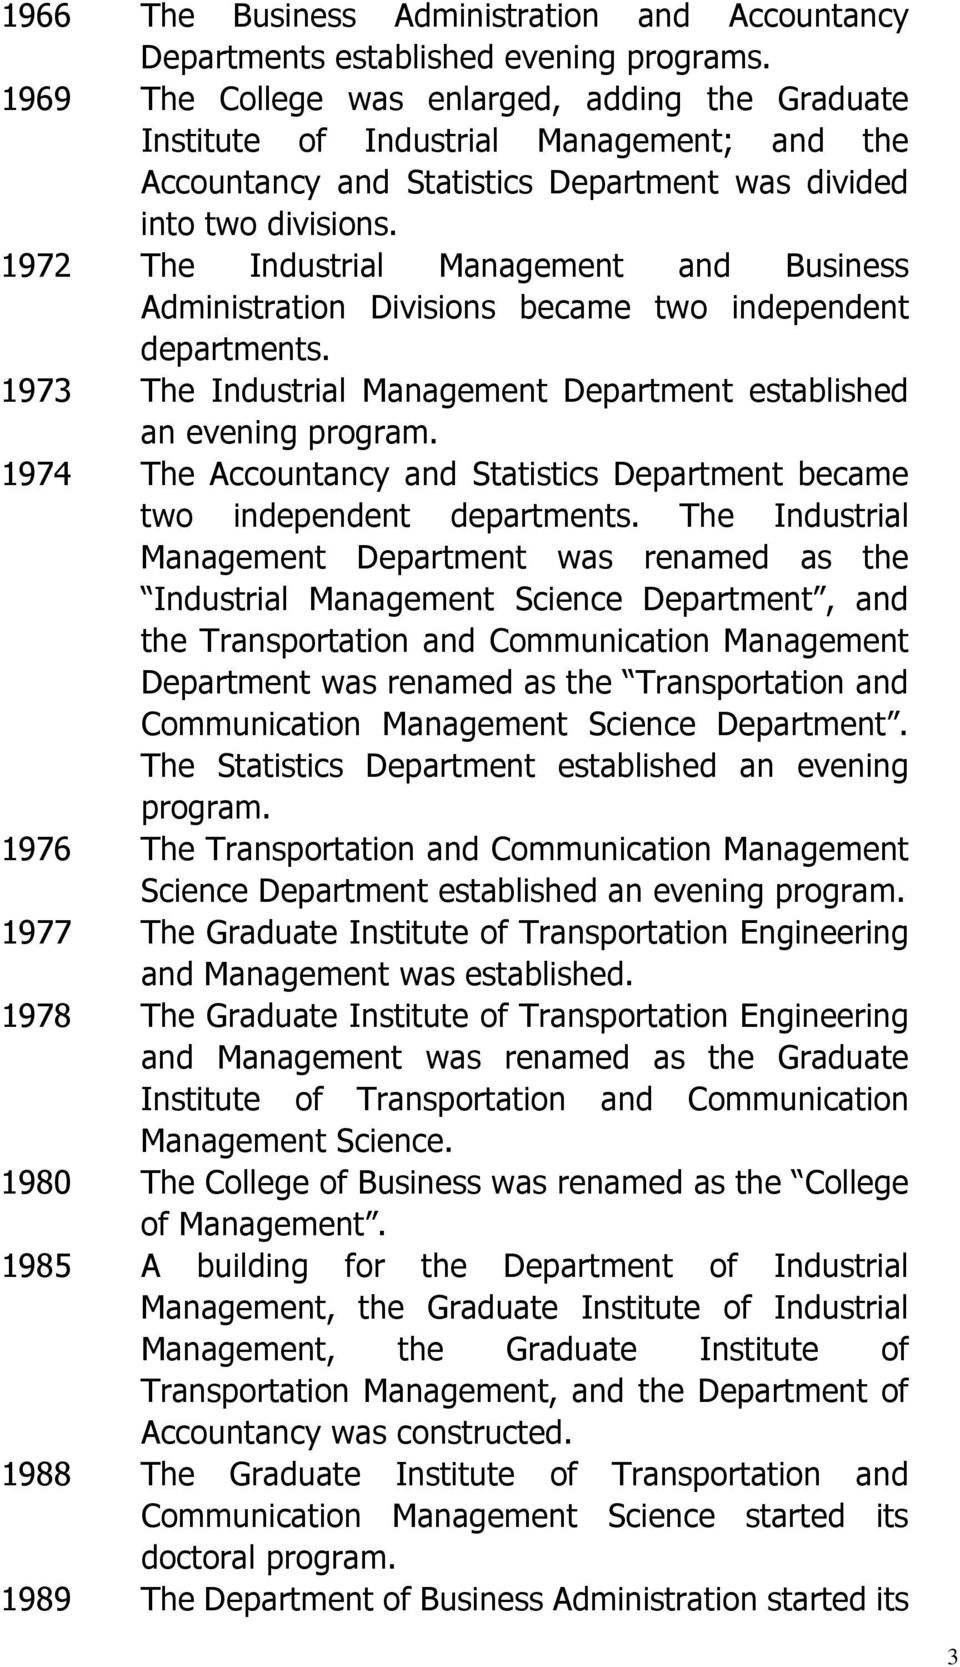 1972 The Industrial Management and Business Administration Divisions became two independent departments. 1973 The Industrial Management Department established an evening program.